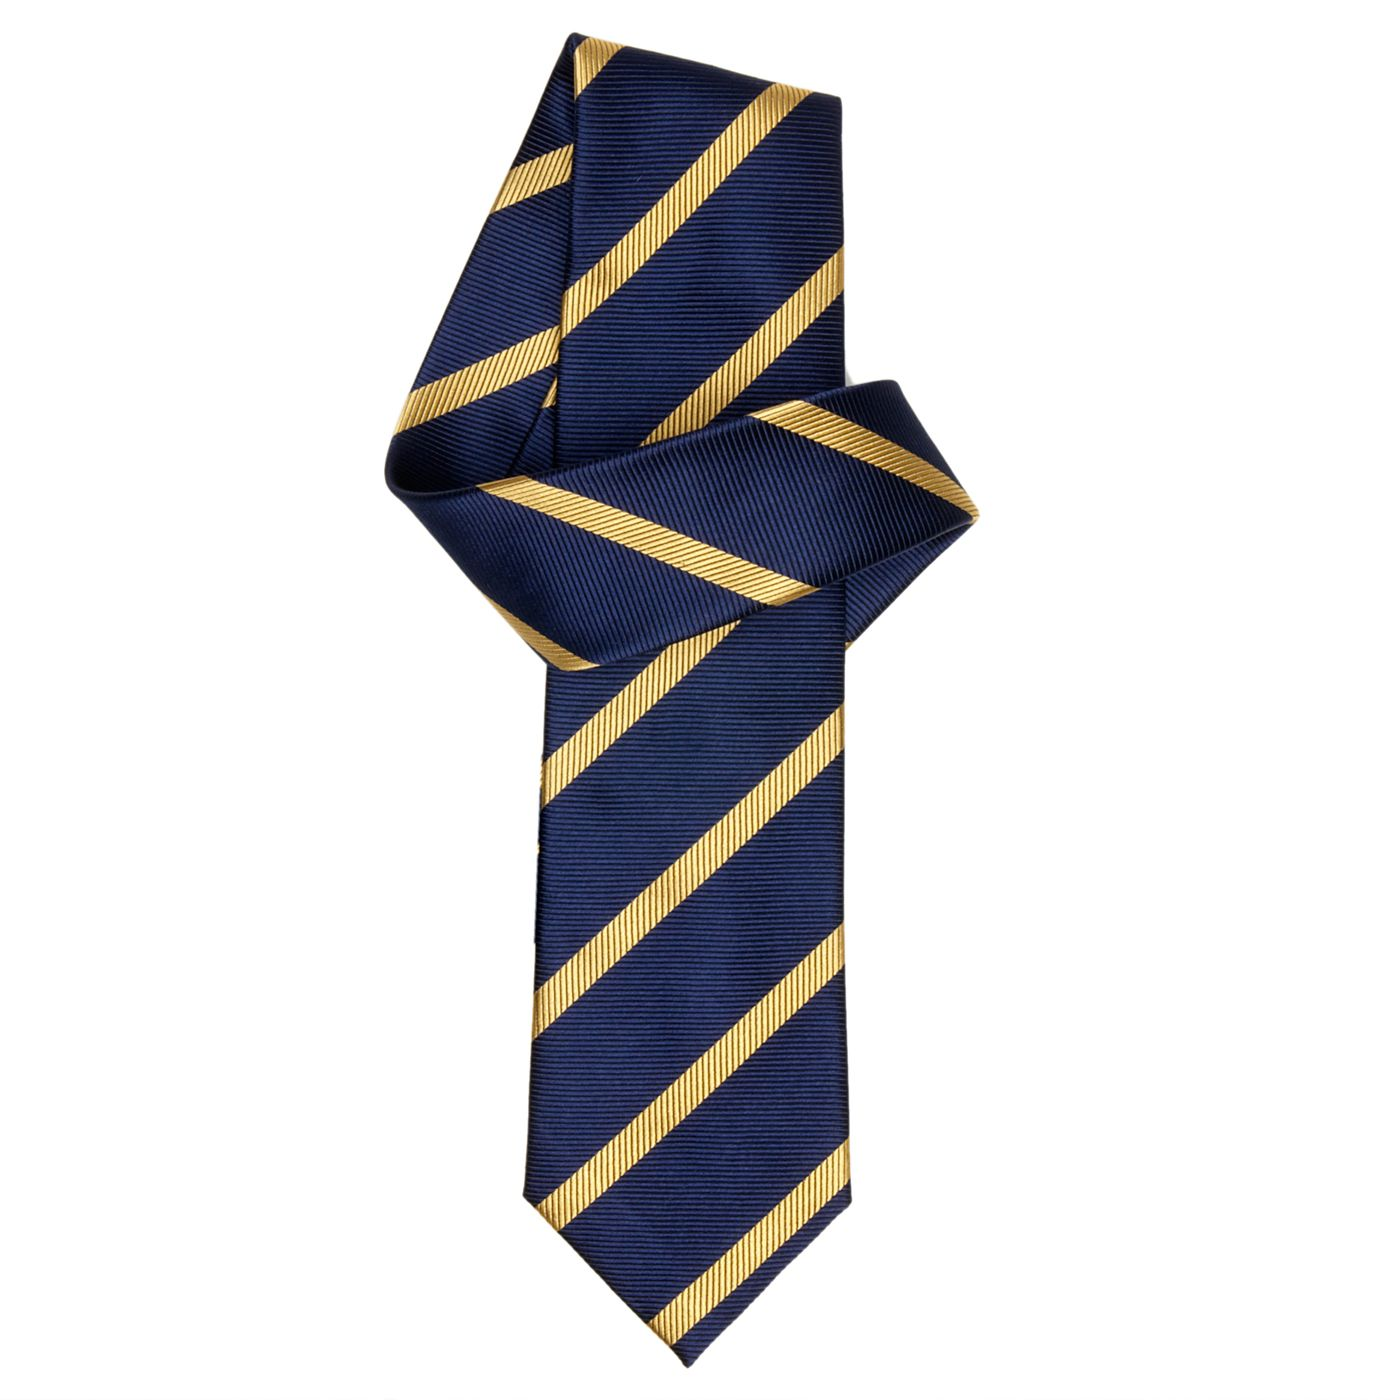 TM Lewin Navy And Yellow Herringbone Stripe Tie